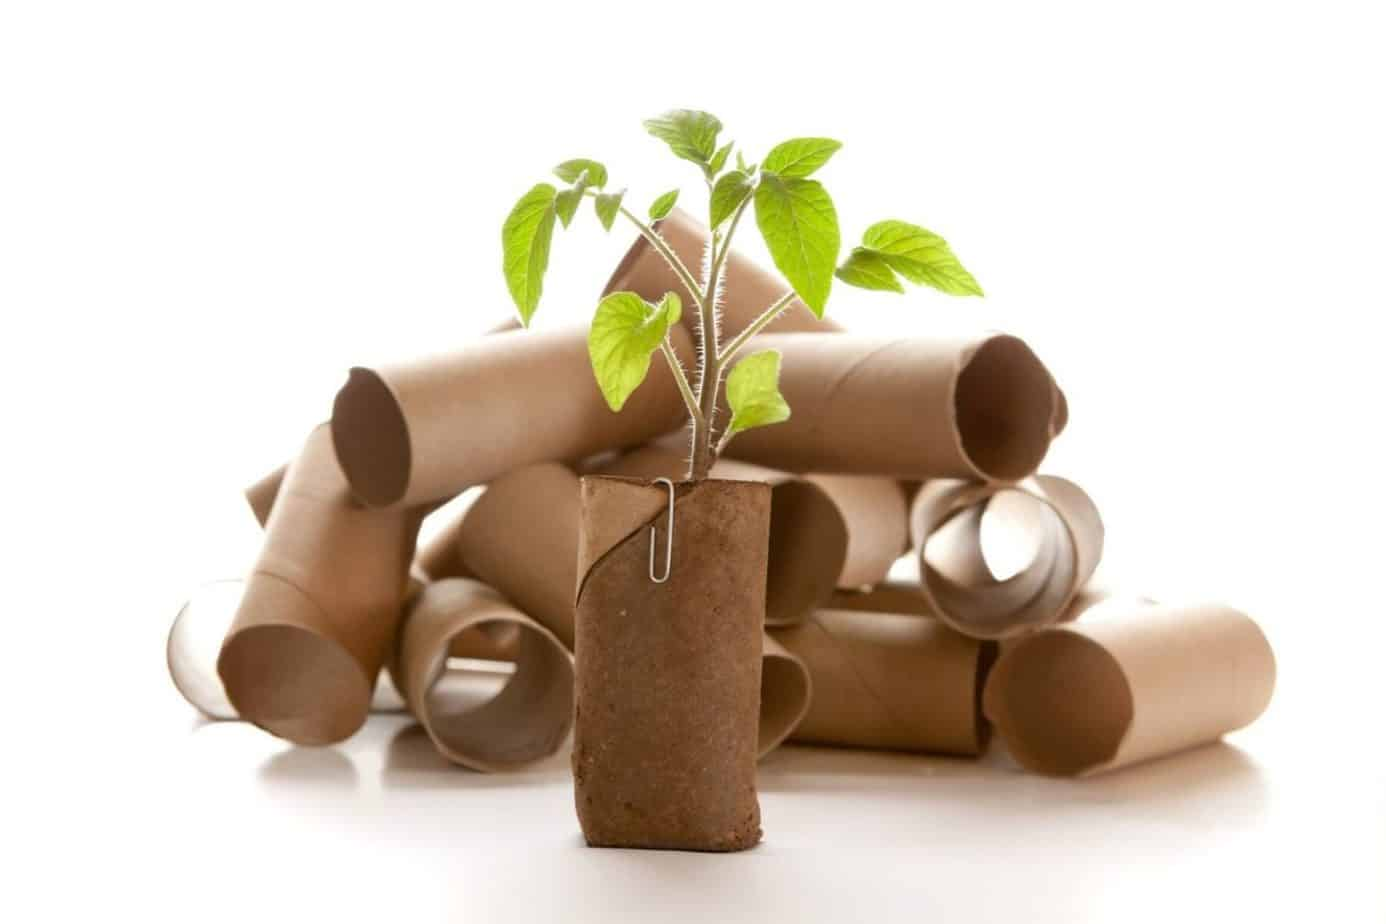 upcycled toilet paper tubes with planter